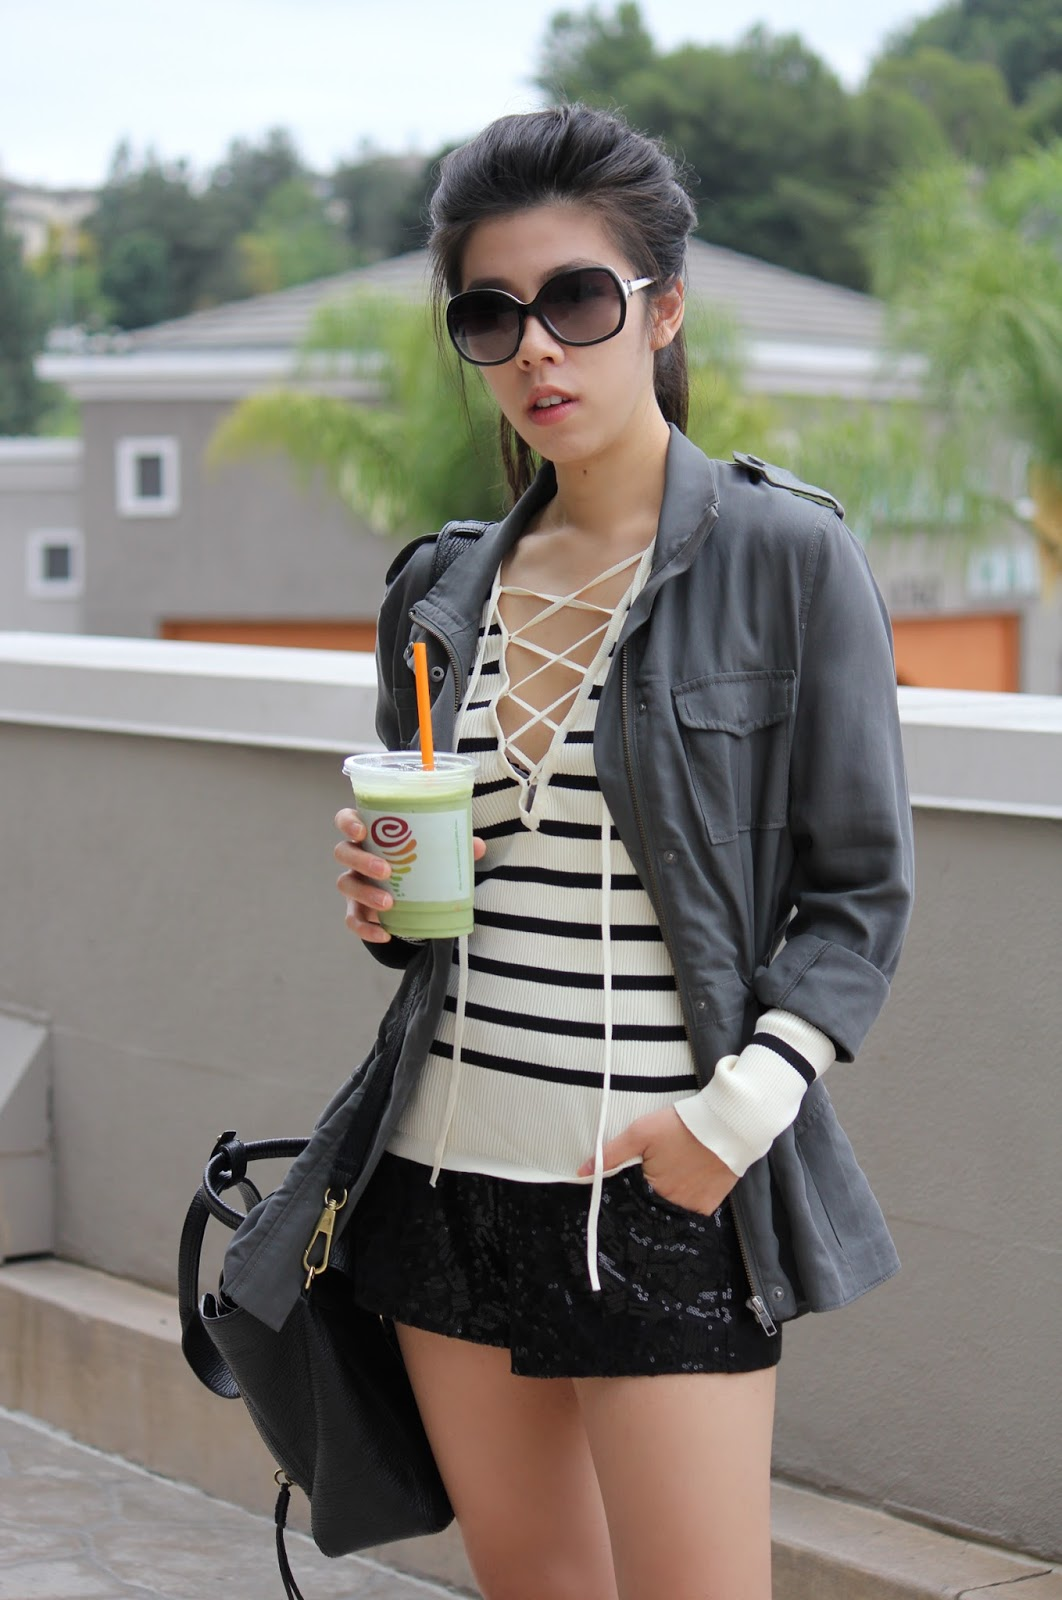 Adrienne Nguyen_Invictus_Energy Bowls Jamba Juice_What I Wore_Casual Weekend Style_California Cool